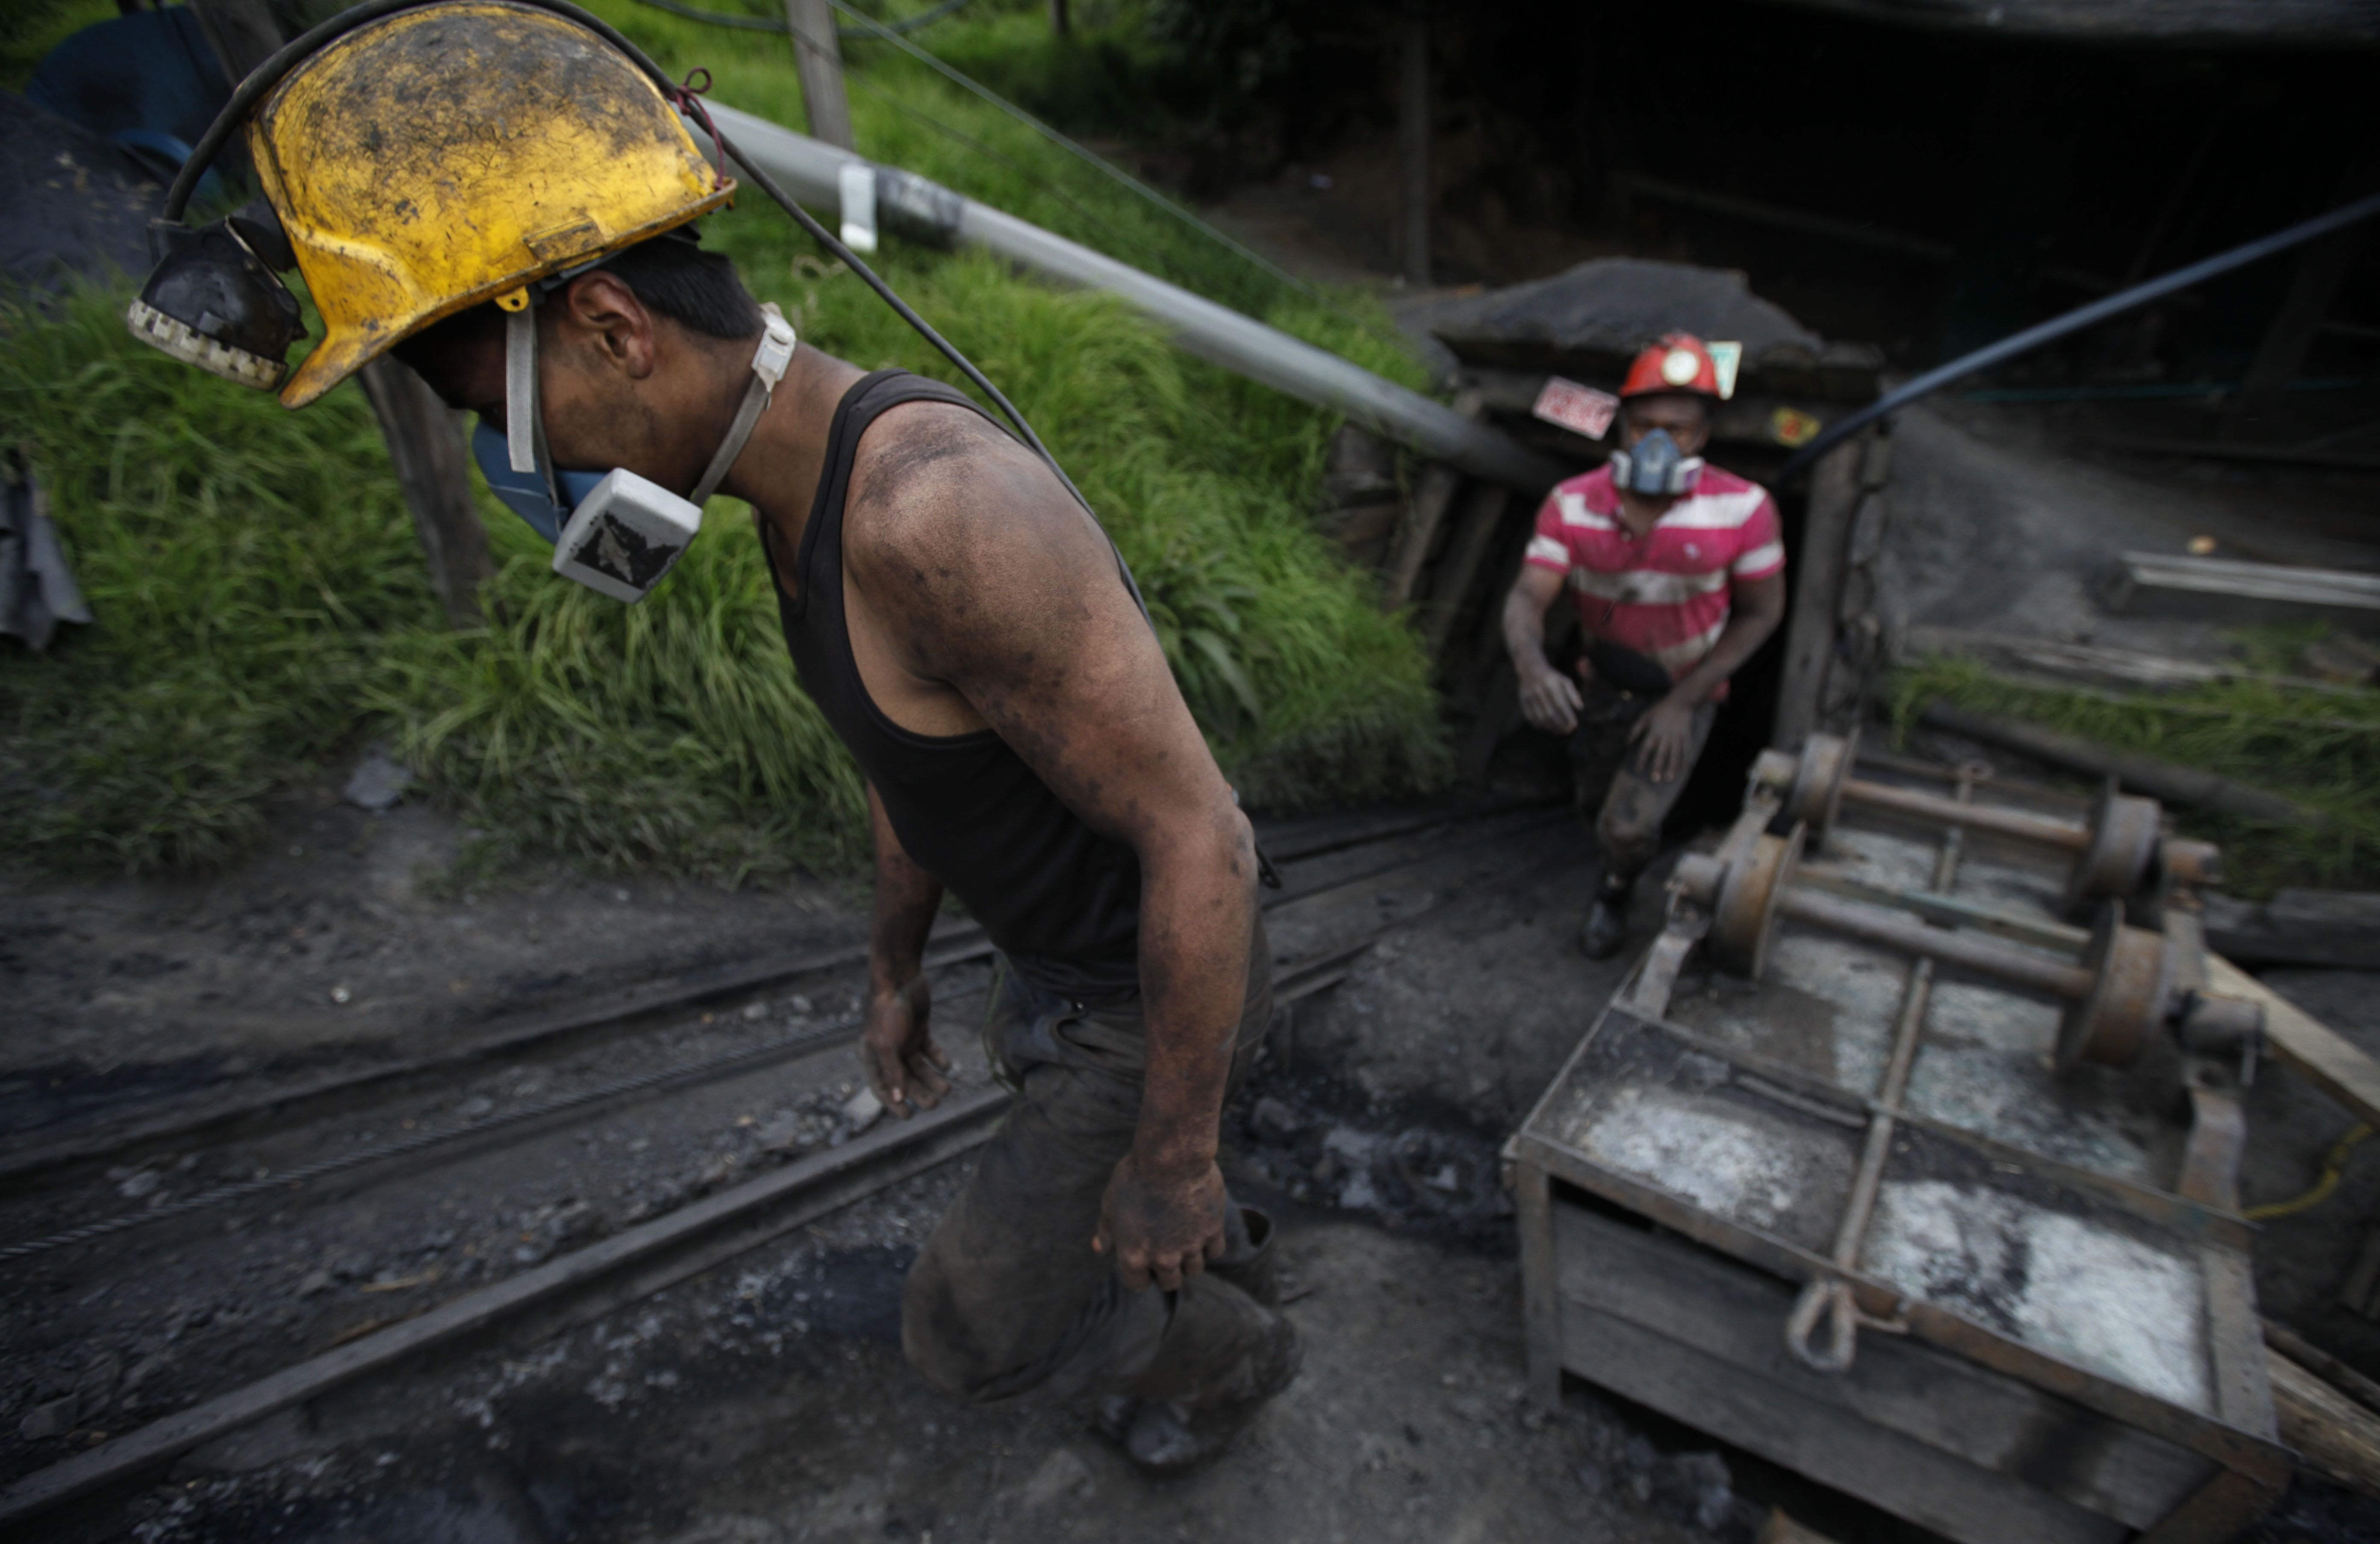 Miners leave the tunnel after their shift at La Flauta coal mine in Tausa, Colombia, Tuesday, Sept. 24, 2013. Tausa residents fear that La Flauta will be closed if authorities declare the area a nature reserve in which mining is prohibited. (AP Photo/Fernando Vergara)